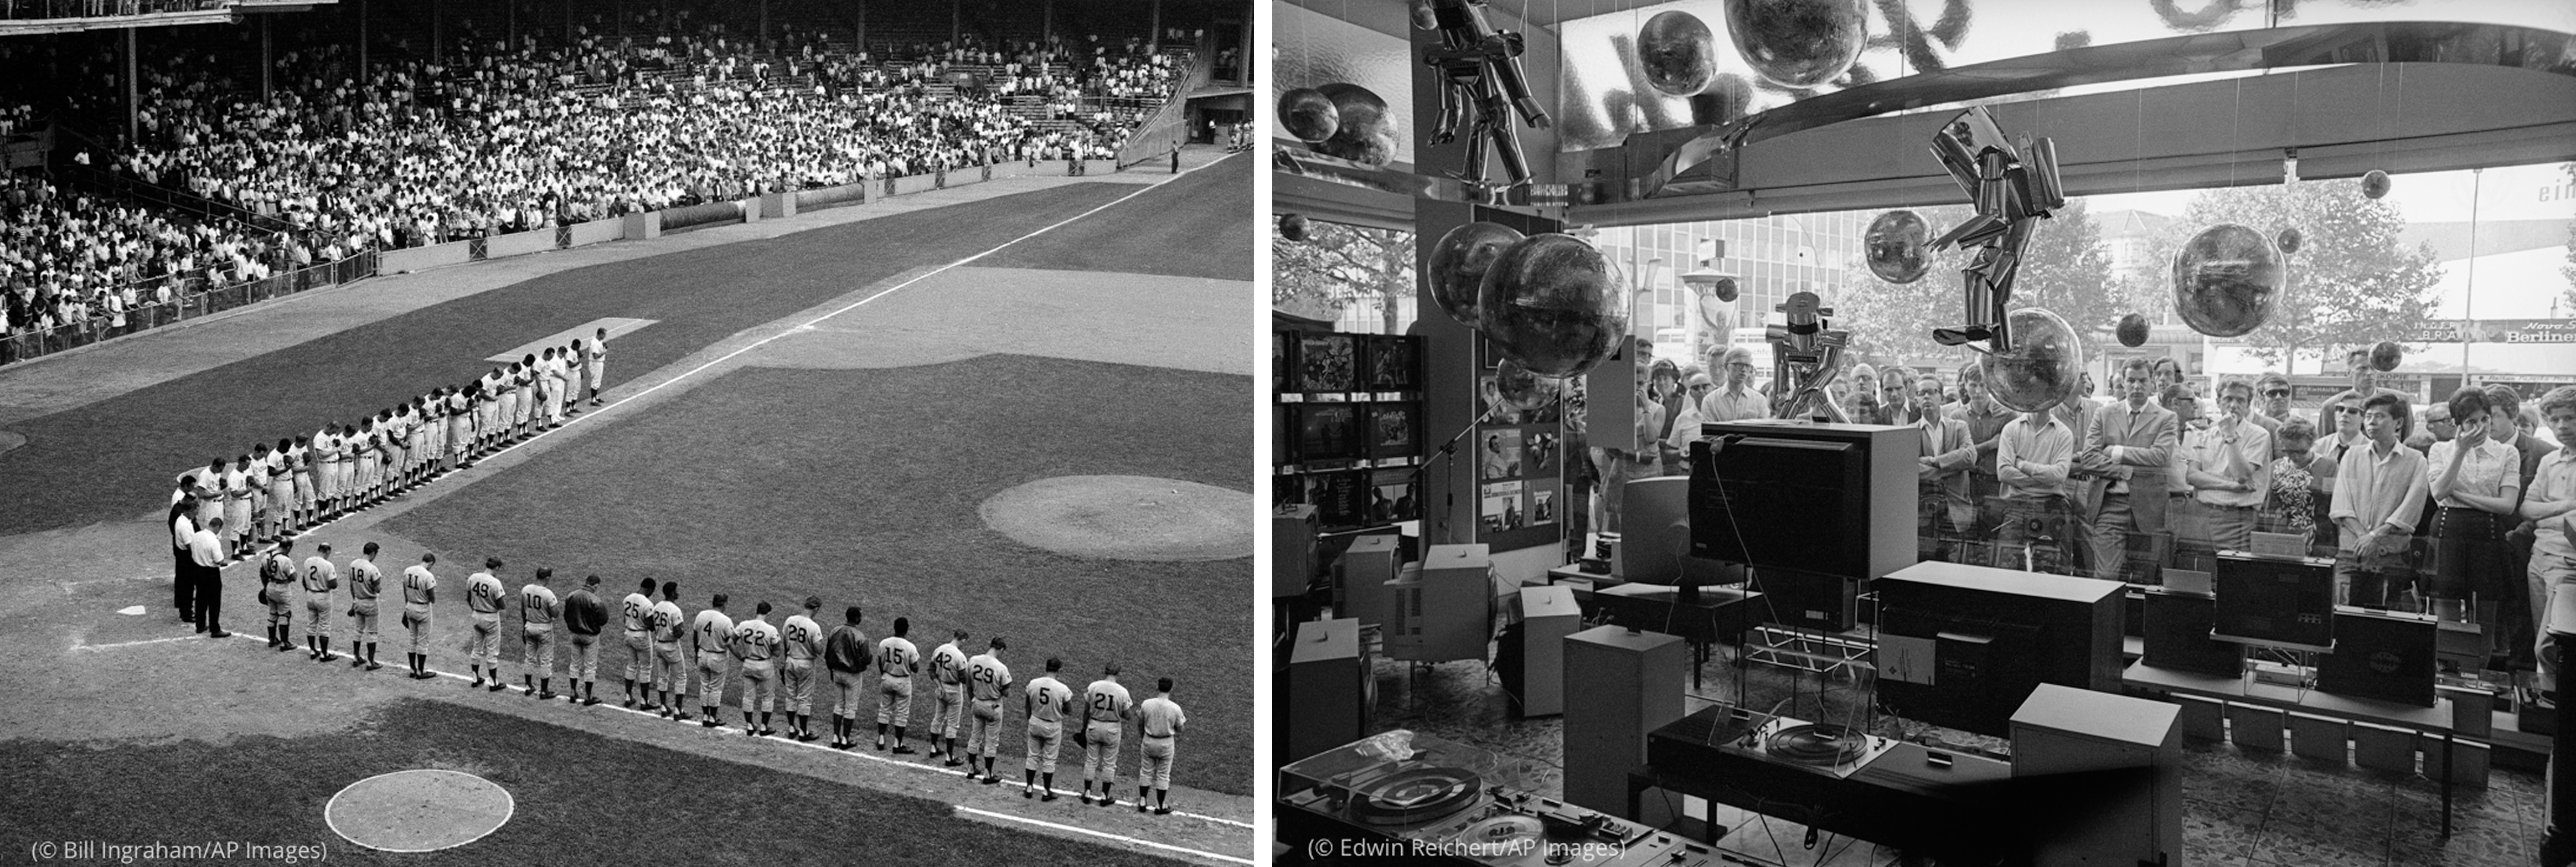 Photo of players lined up on baseball field (© Bill Ingraham/AP Images) next to photo of crowd watching TV through storefront window (© Edwin Reichert/AP Images)